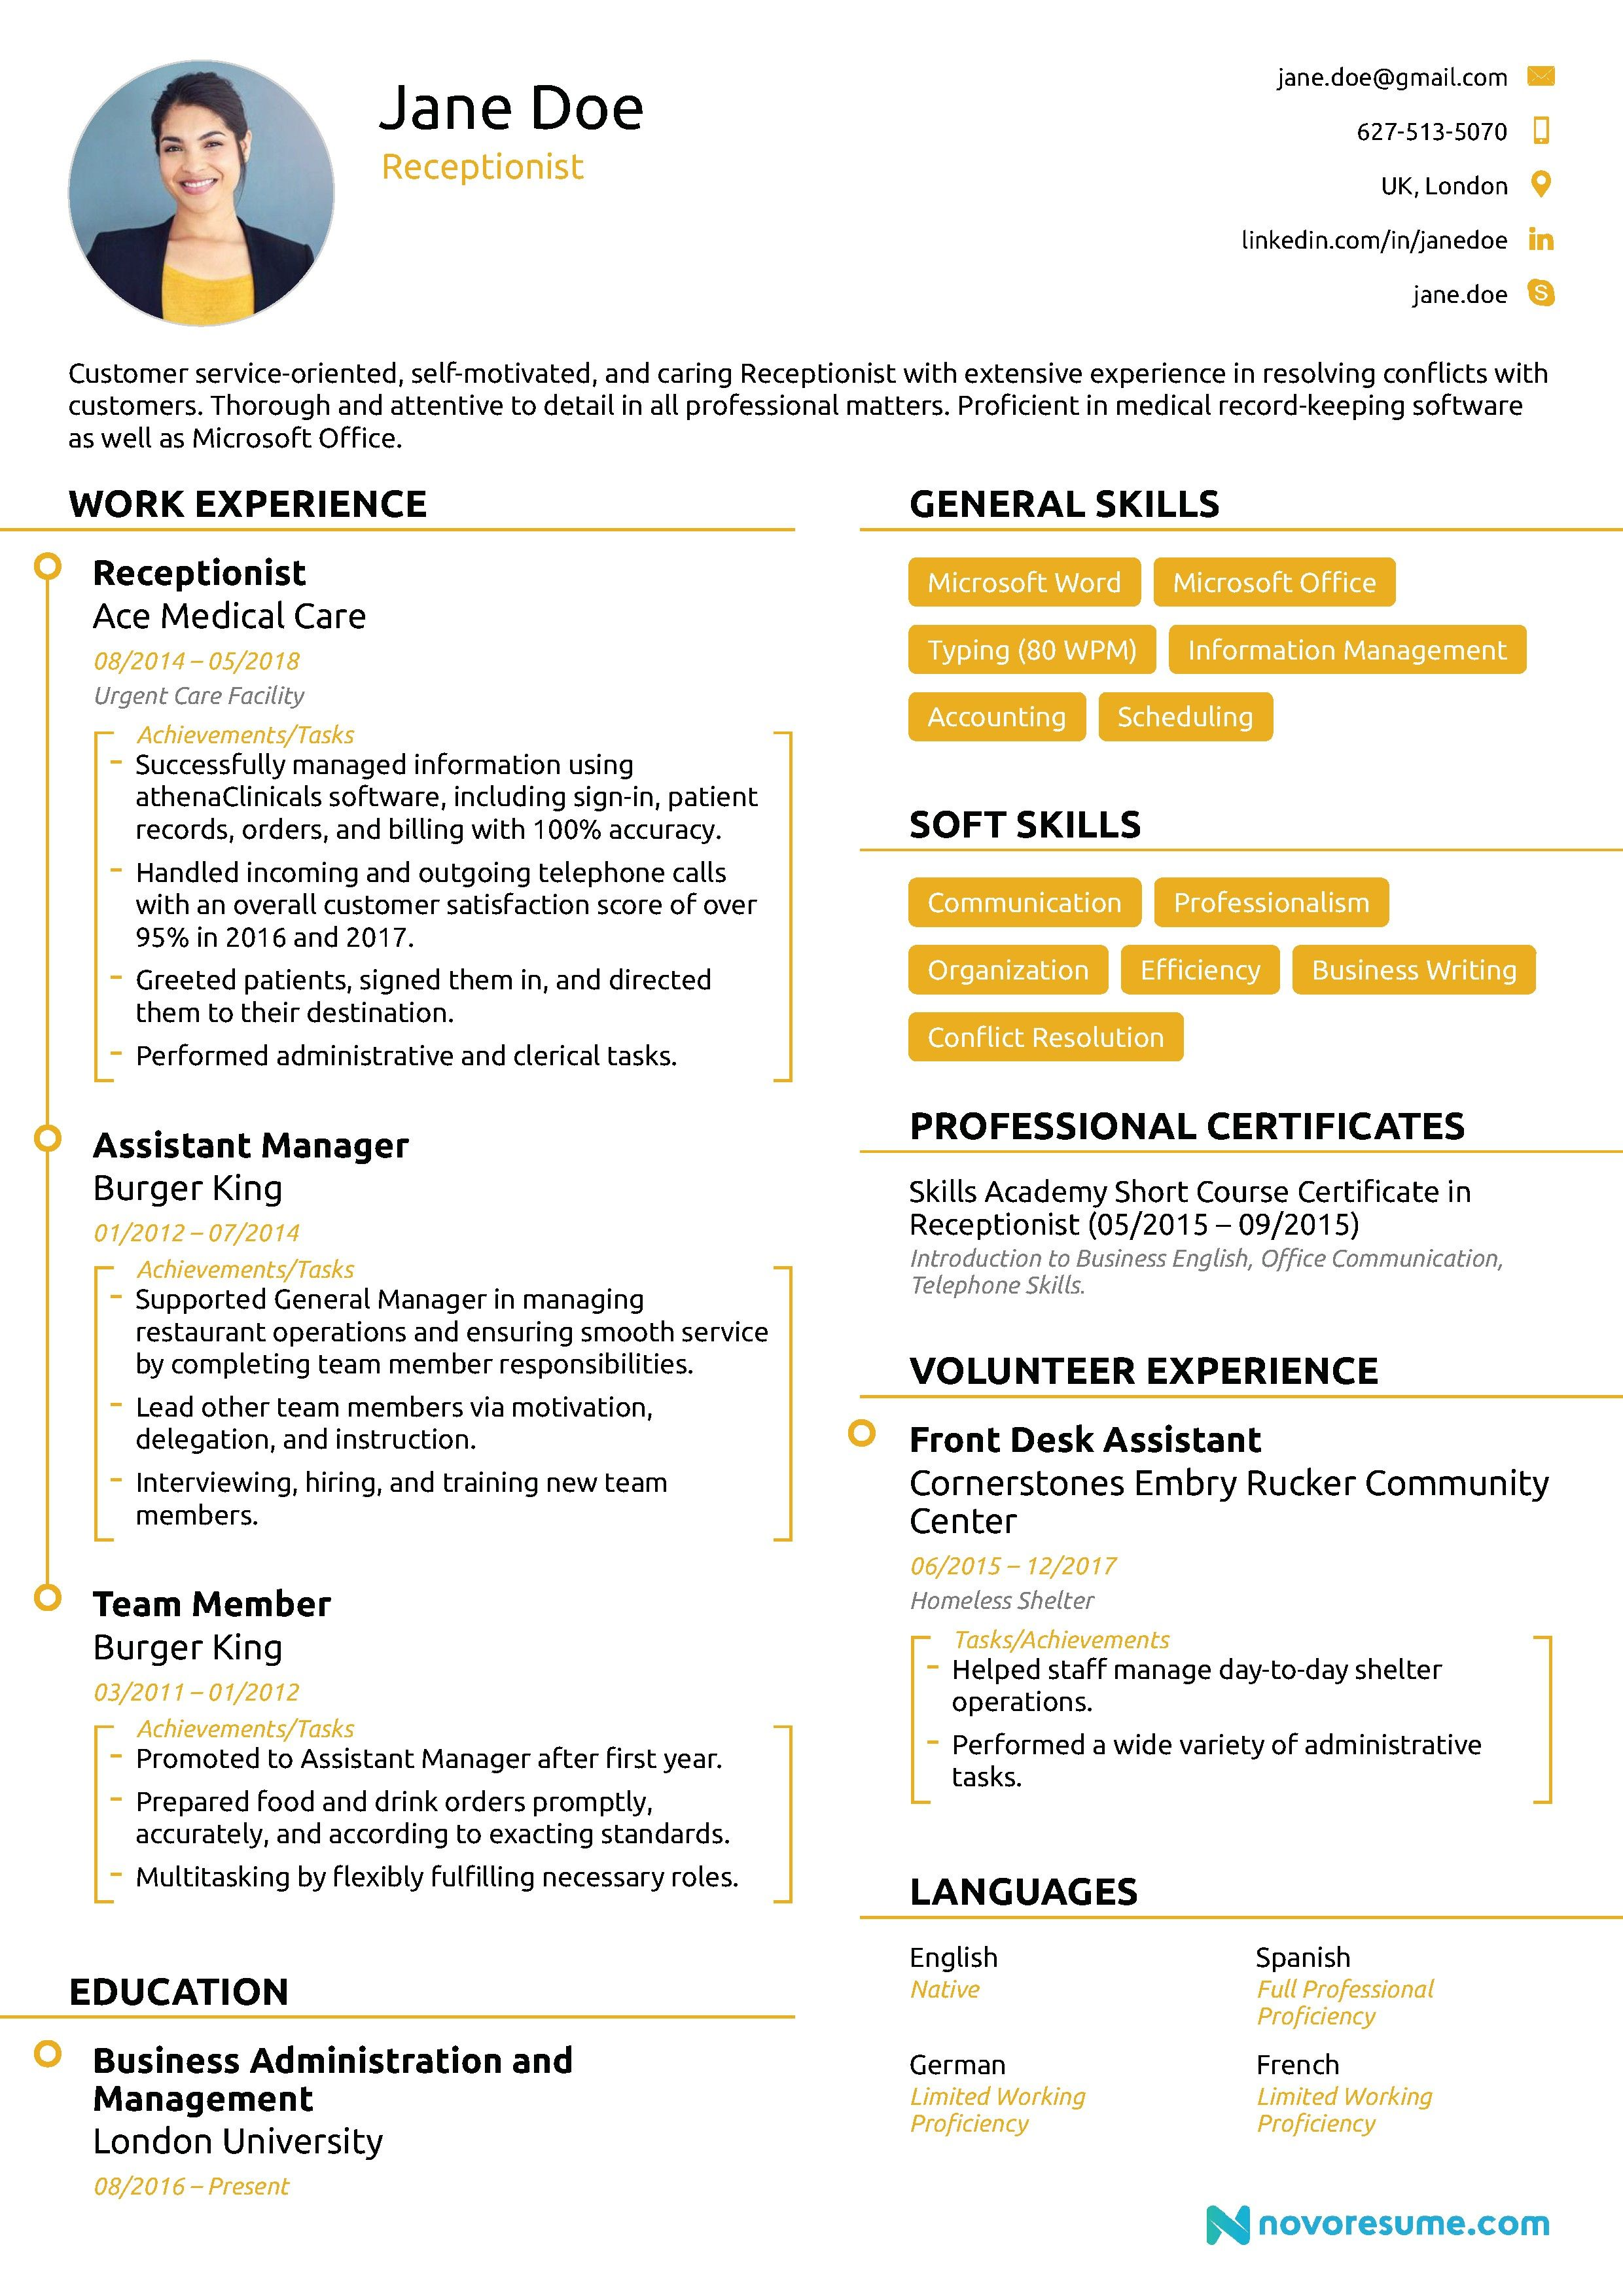 The Best Ideas for Resume Styles 2019 Bio data for